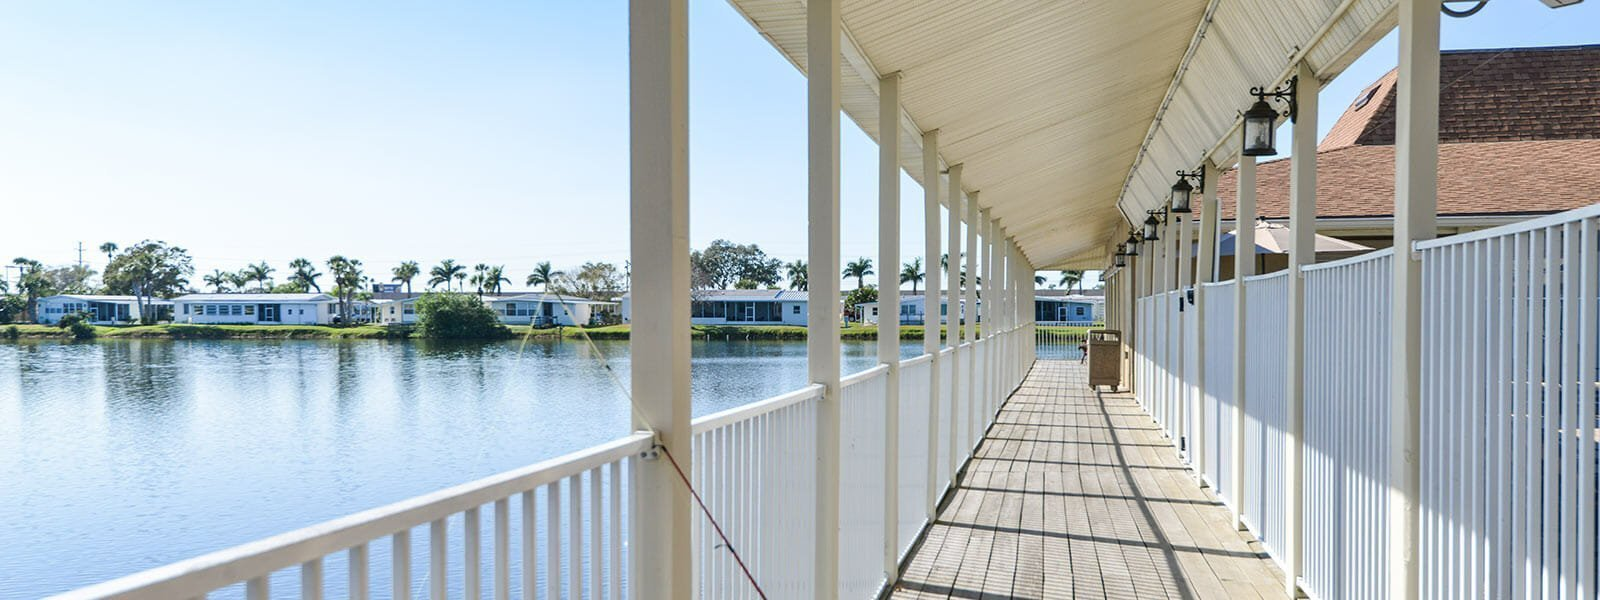 Lamplighter Village | Mobile Homes for sale in Florida | FL community